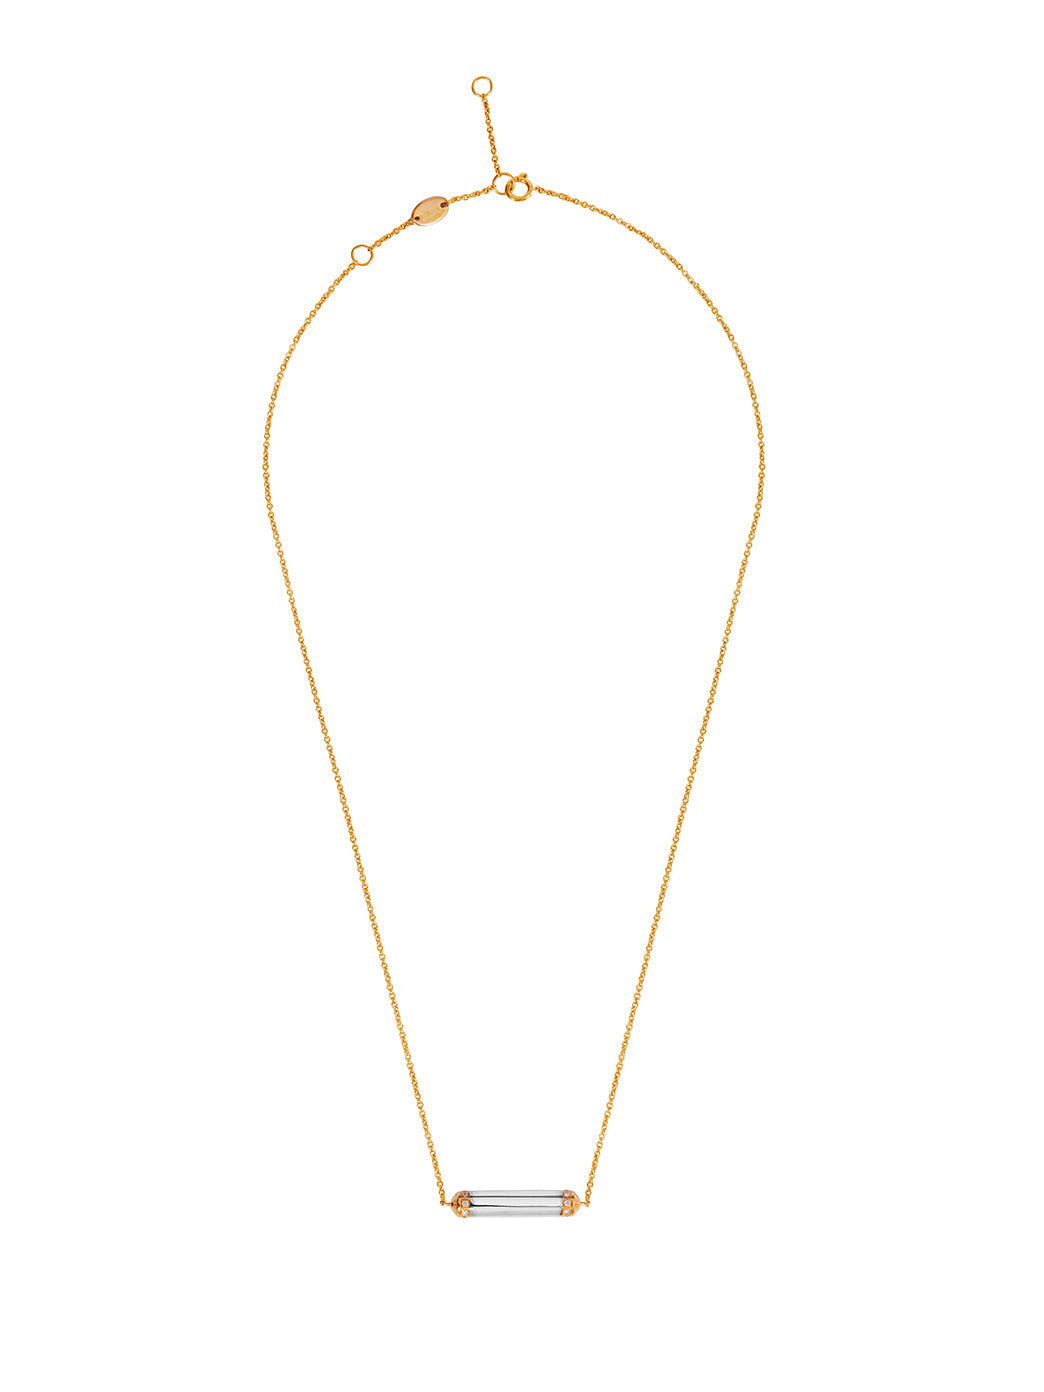 Fiorina Jewellery Manifest Necklace White Gold Bar